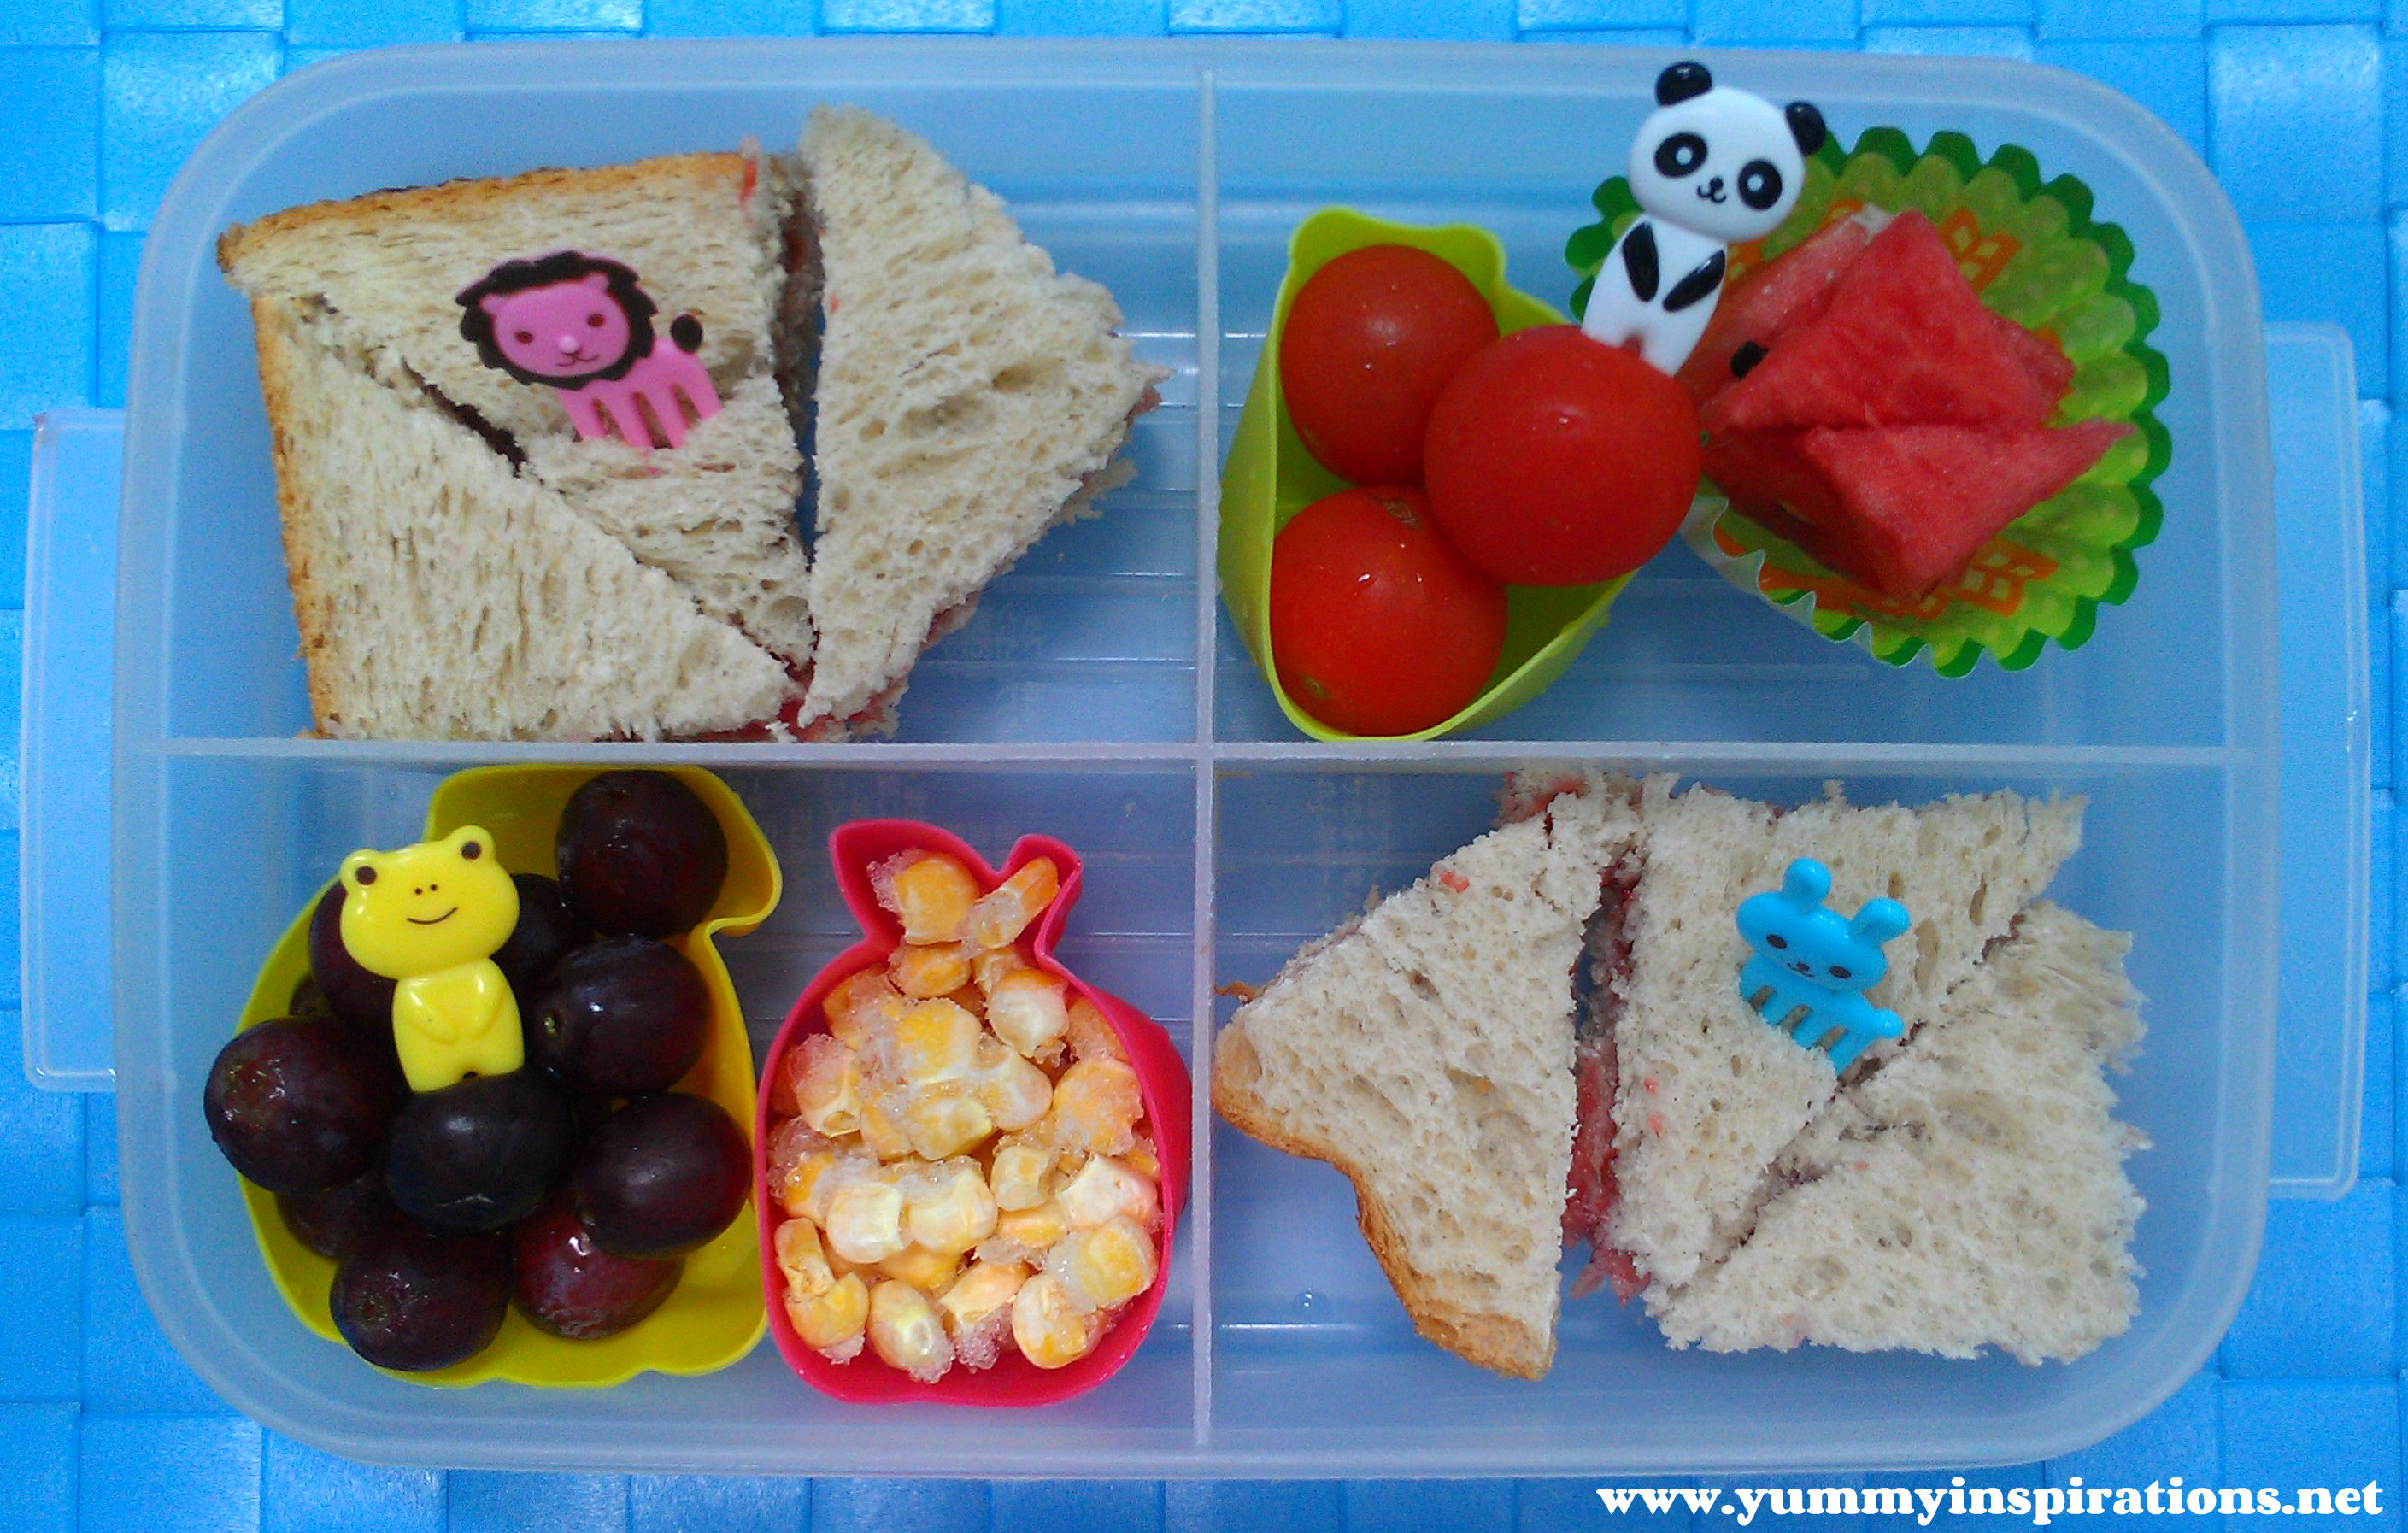 Yumbox and Bento boxes are typically very compact and small, which means that when it comes to toddler lunch ideas, you must get creative in how you pack your foods.